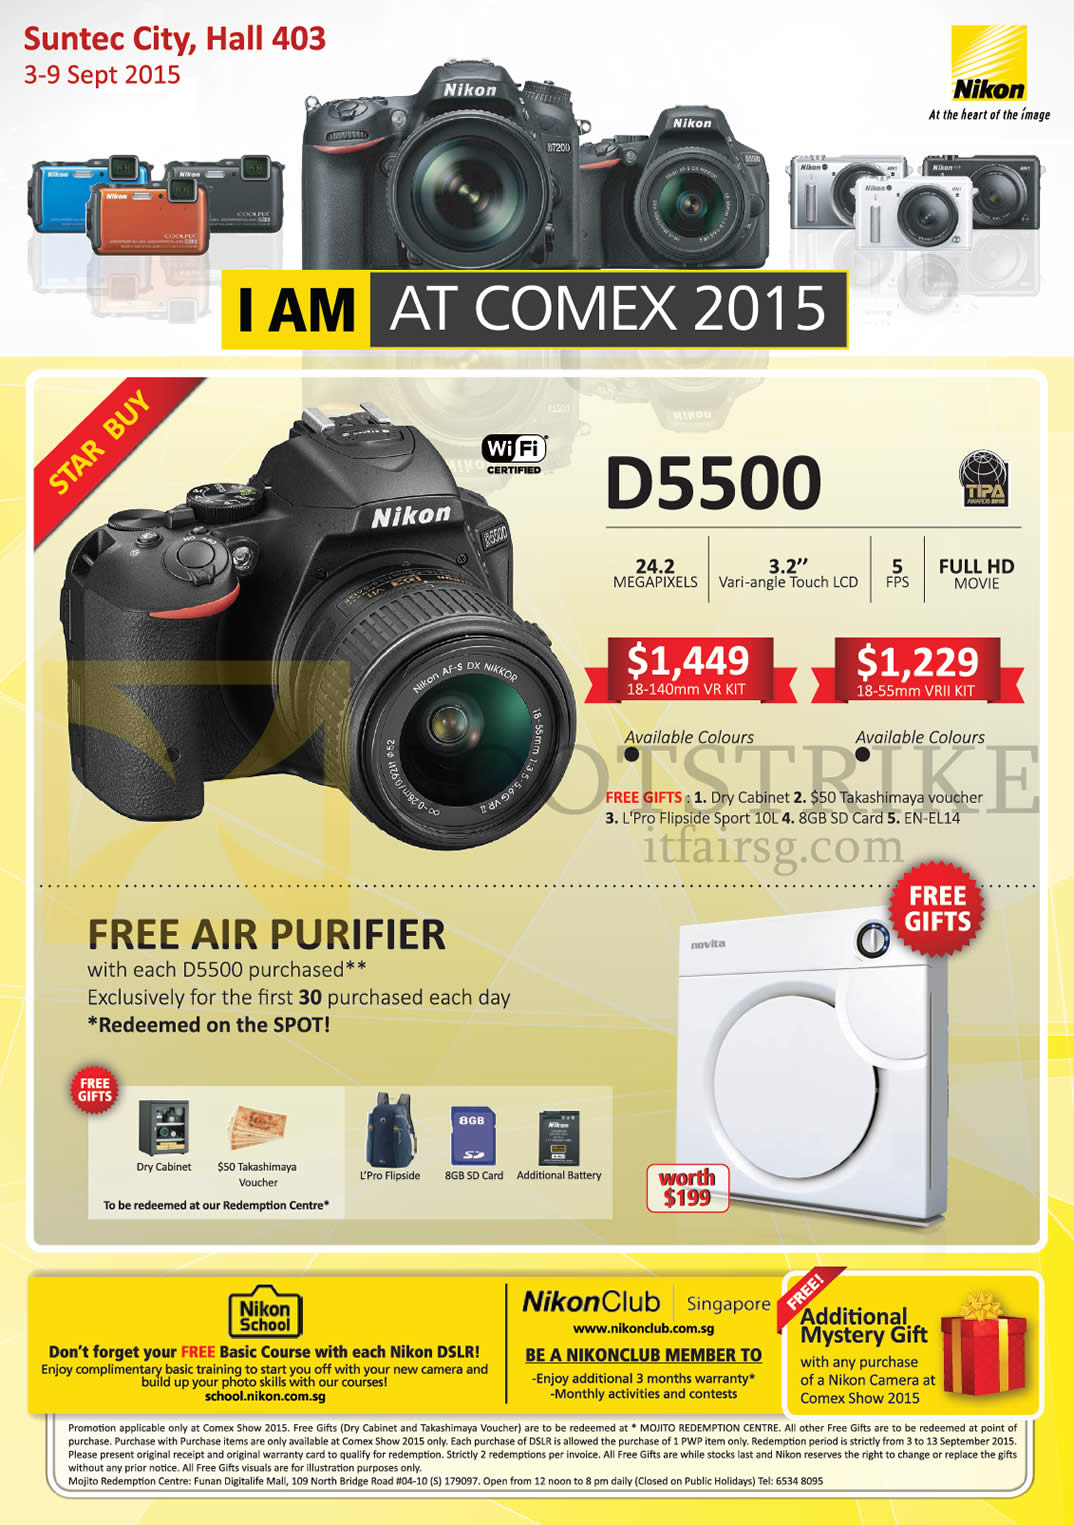 Nikon Digital Camera DSLR D5500, Free Air Purifier